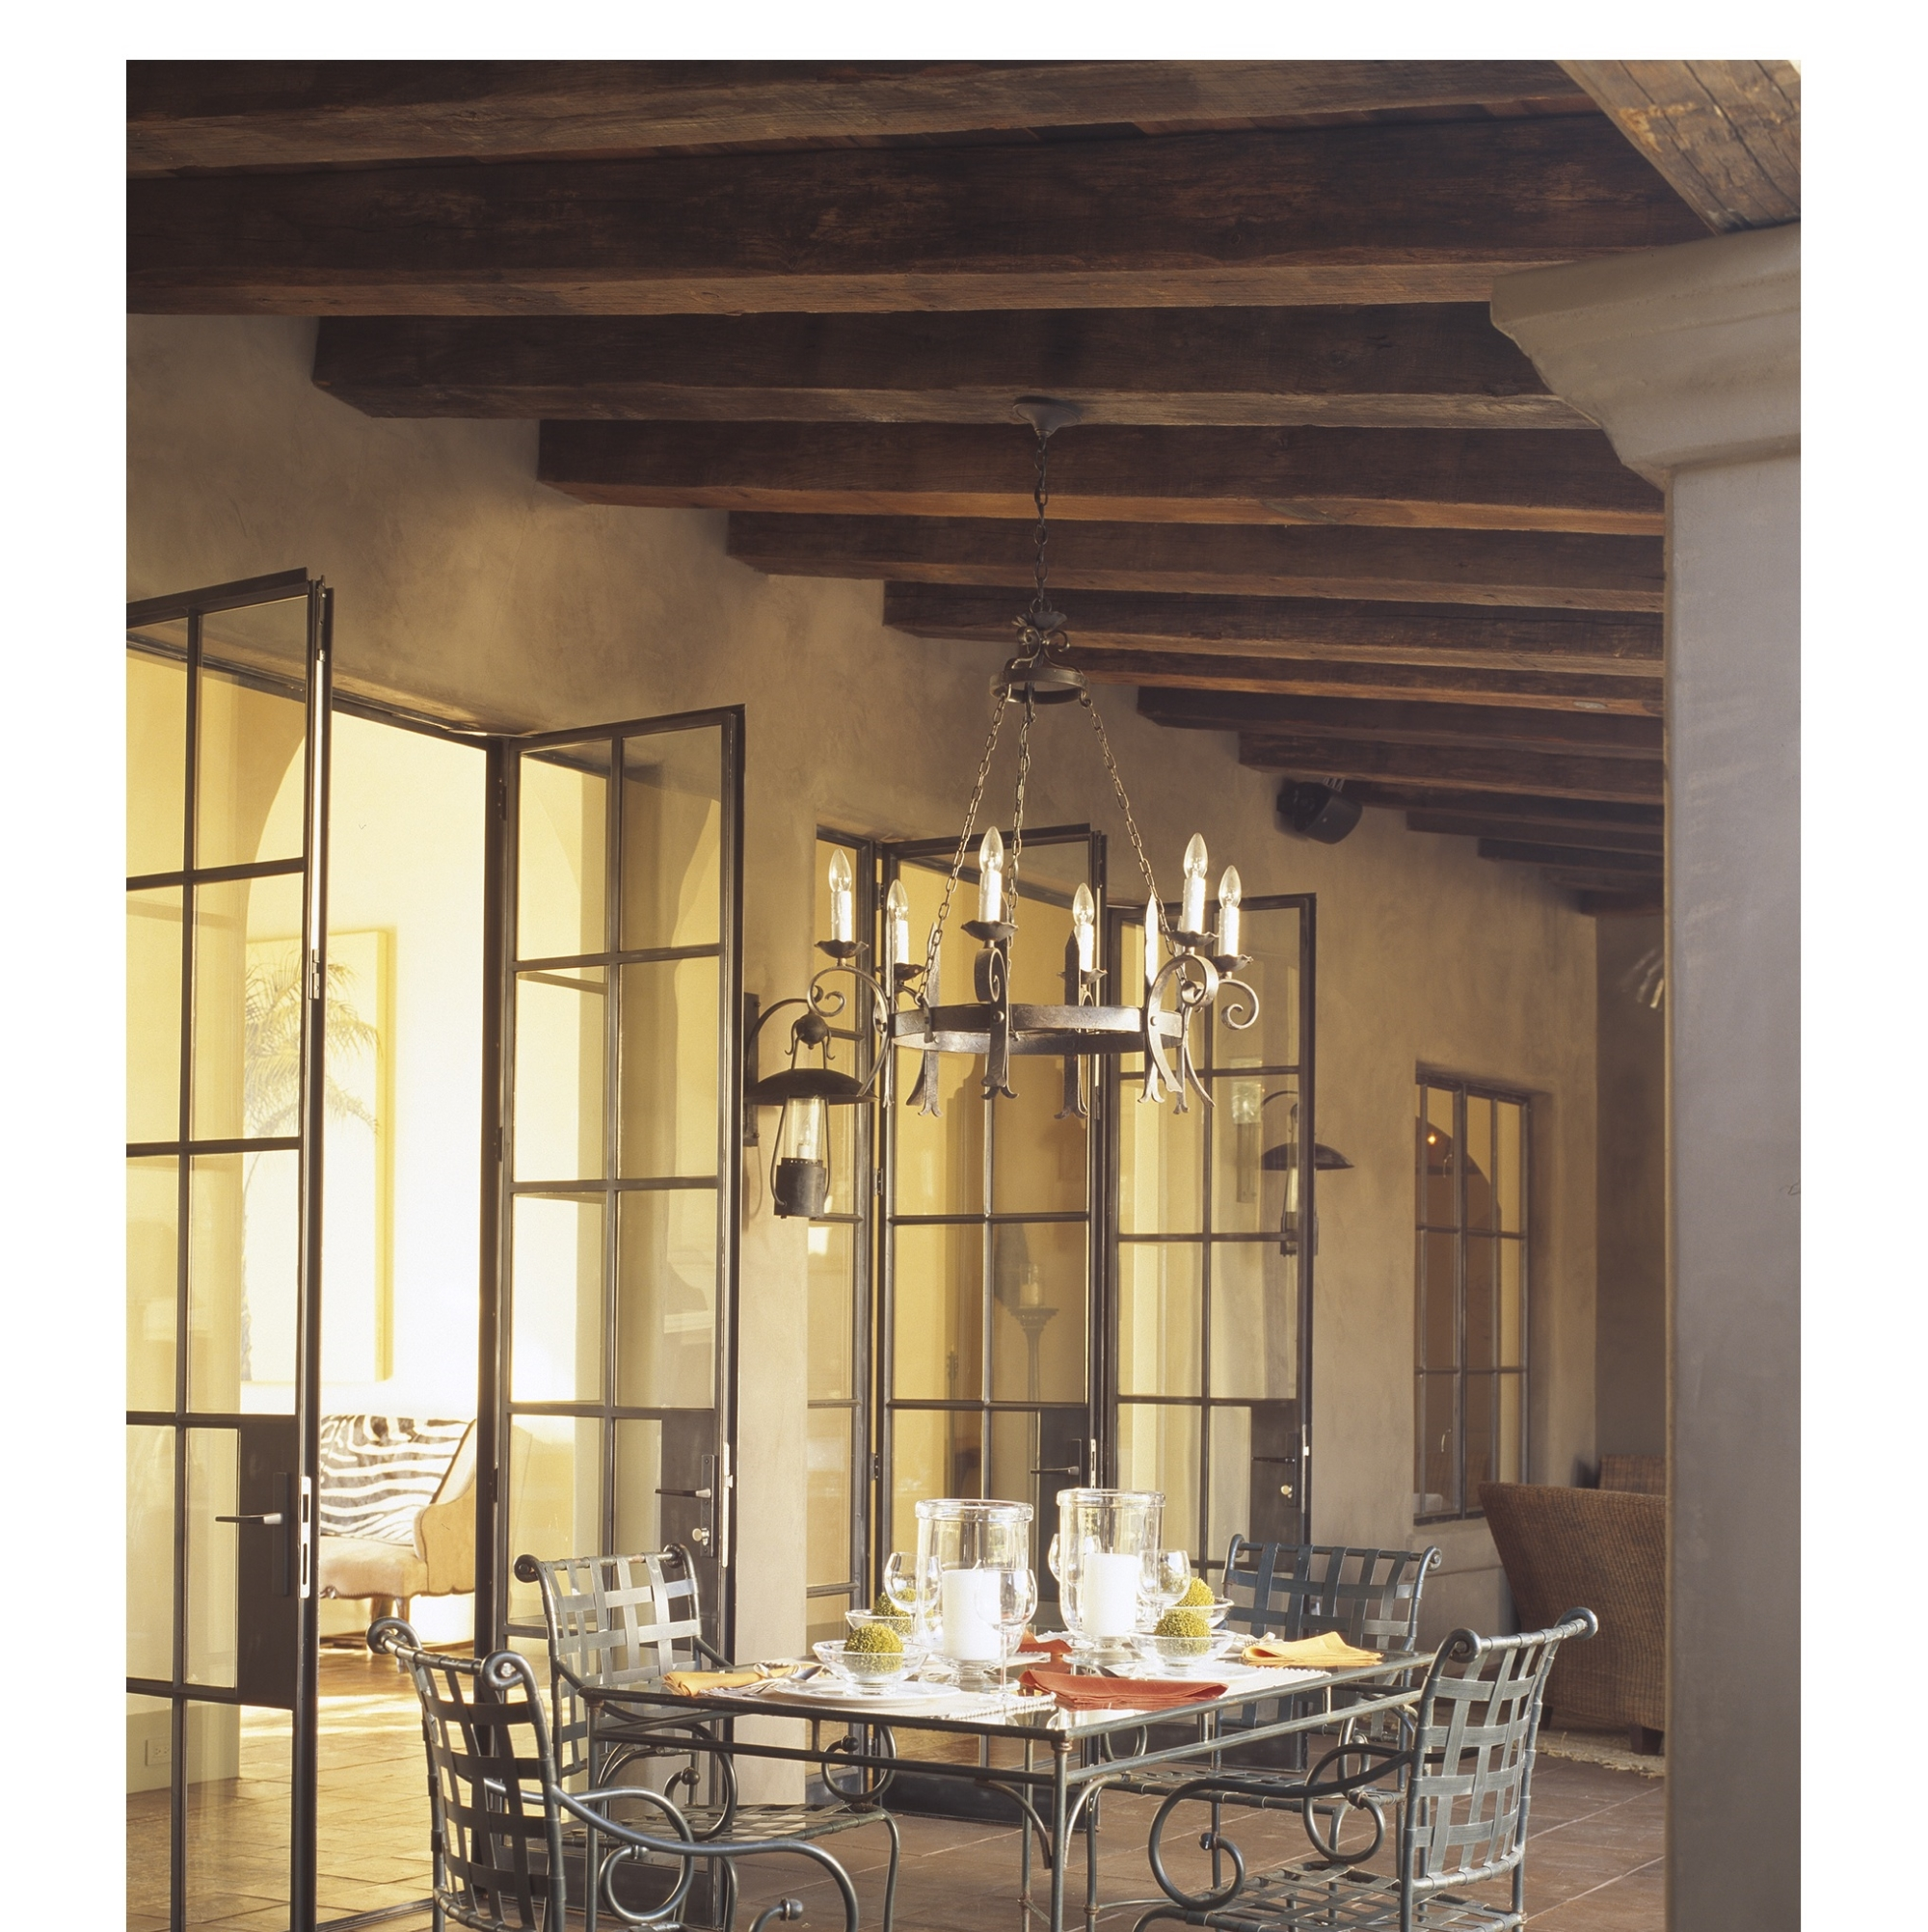 Interior - beams - hand hewn-Dinner Alfresco Berquist.jpg